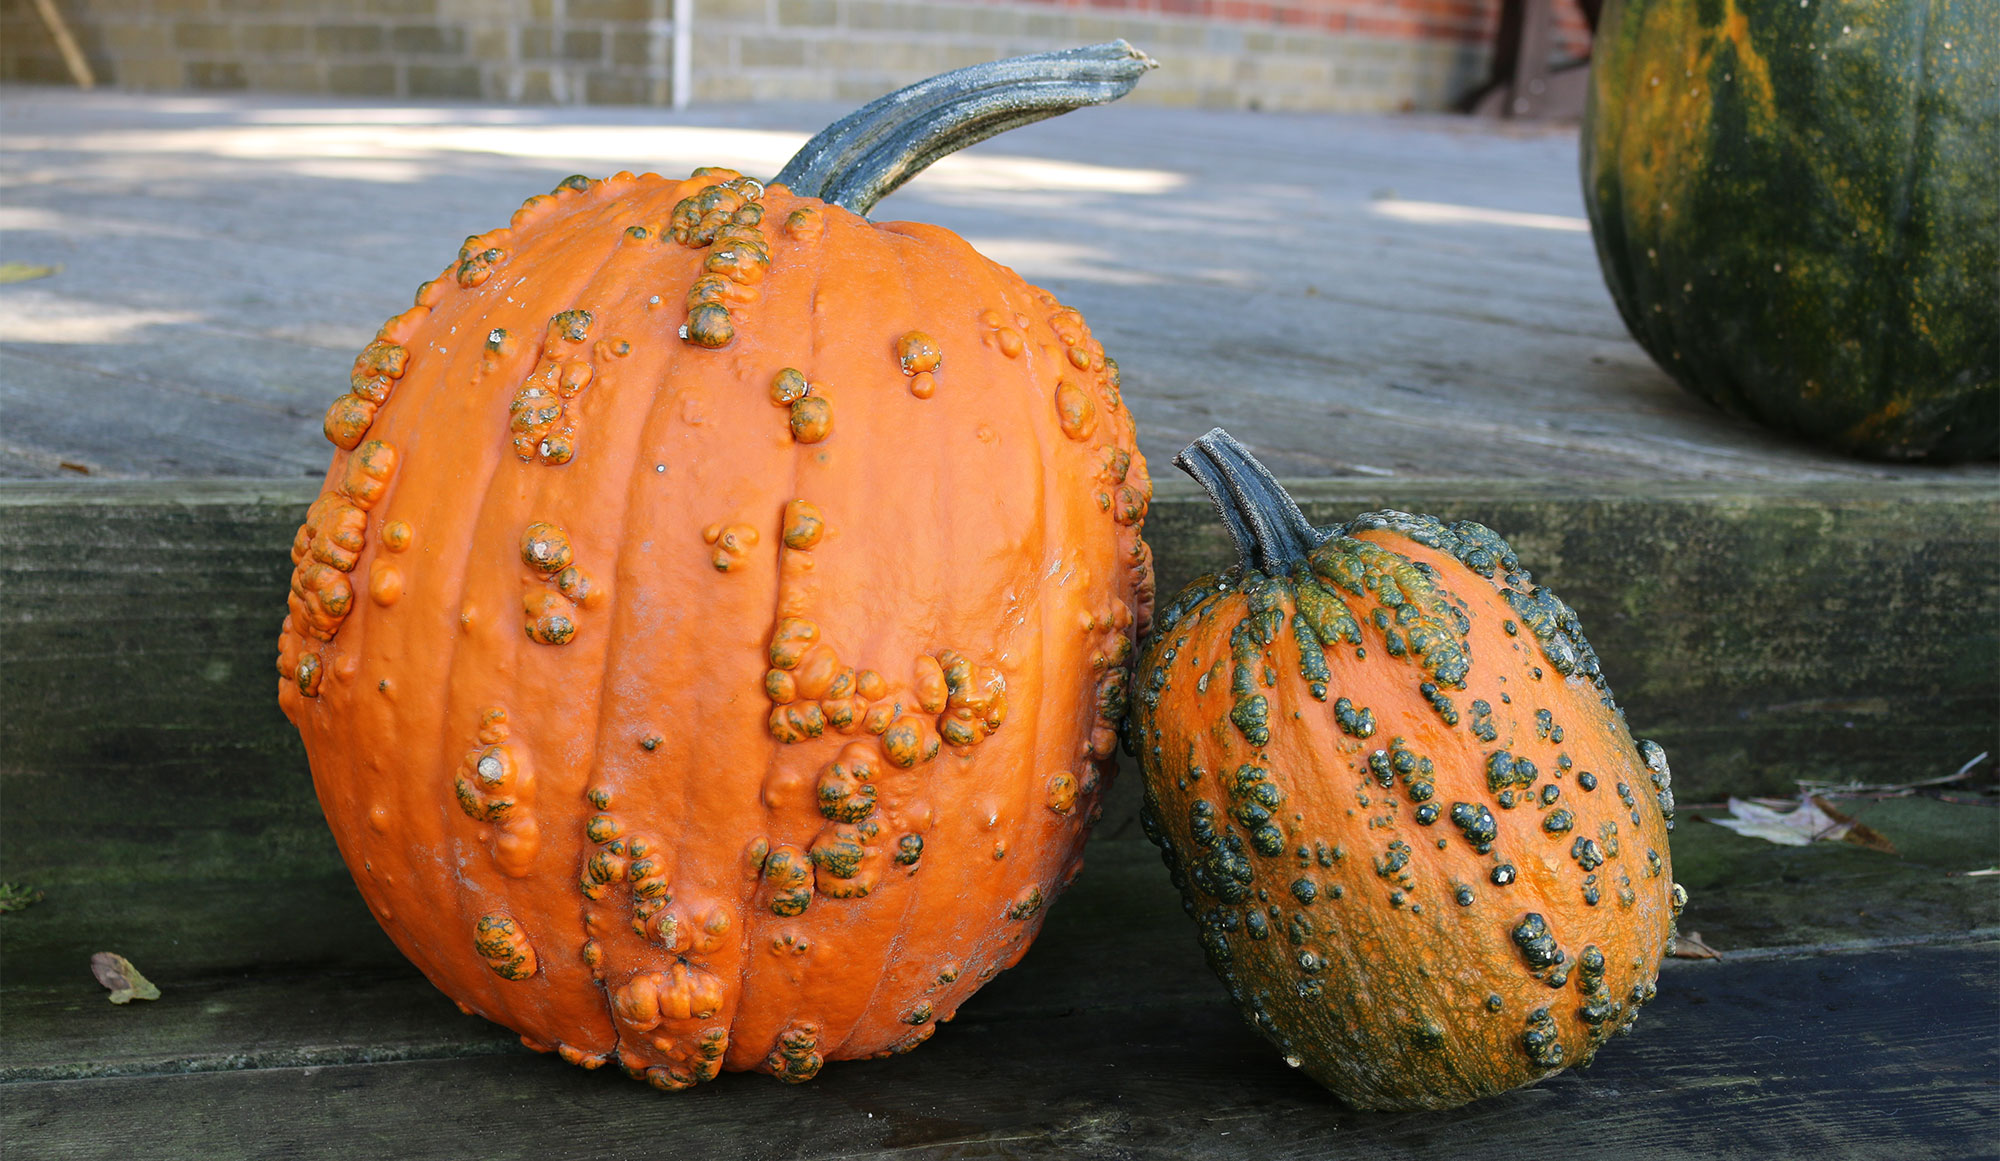 Wart-covered Knucklehead pumpkins